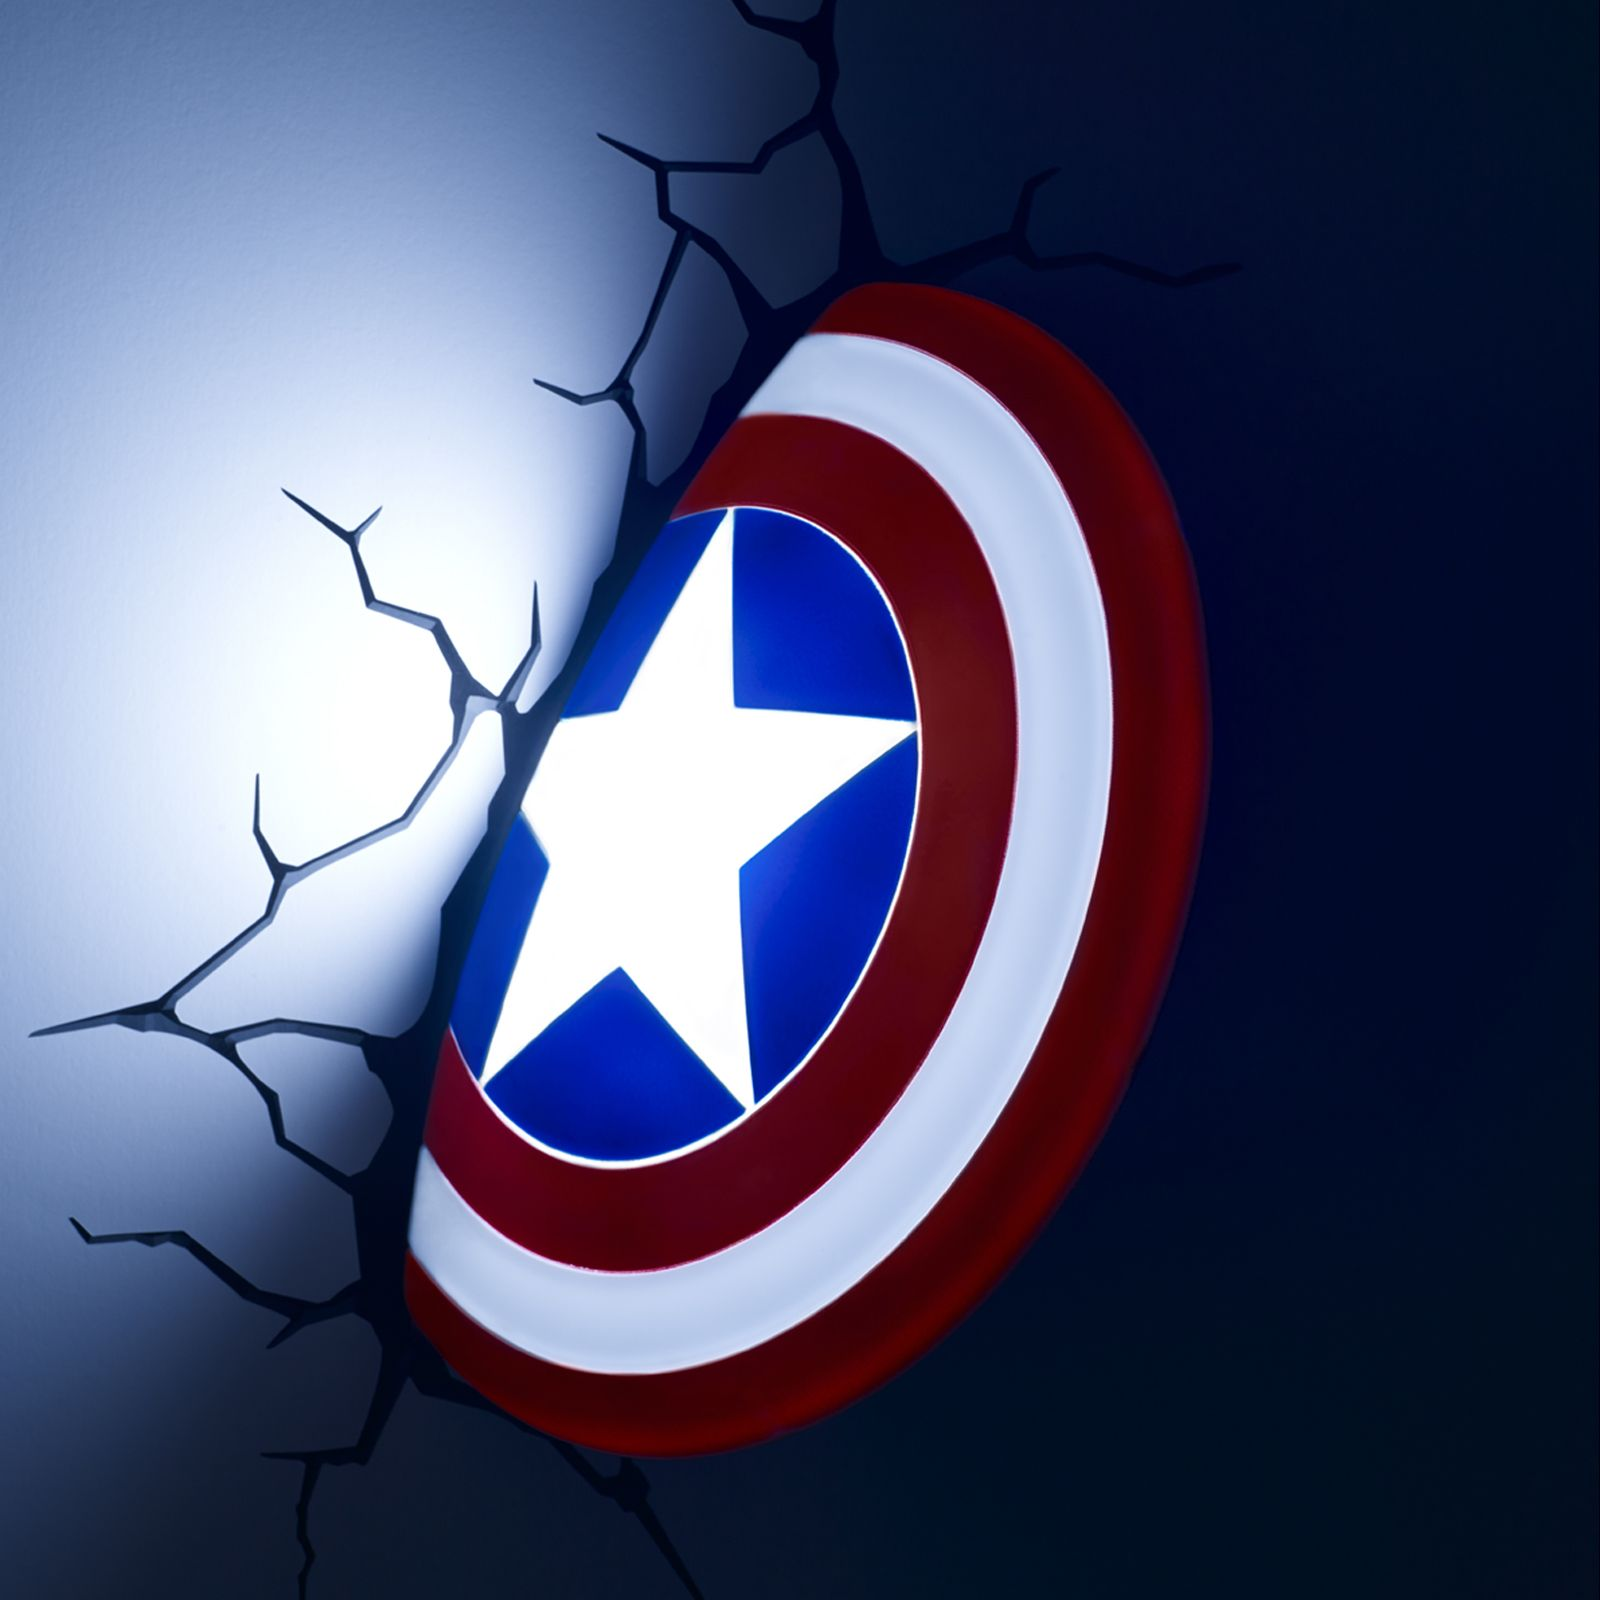 Star Wall Stickers Uk Marvel Captain America Shield 3d Fx Led Wall Light Lamp